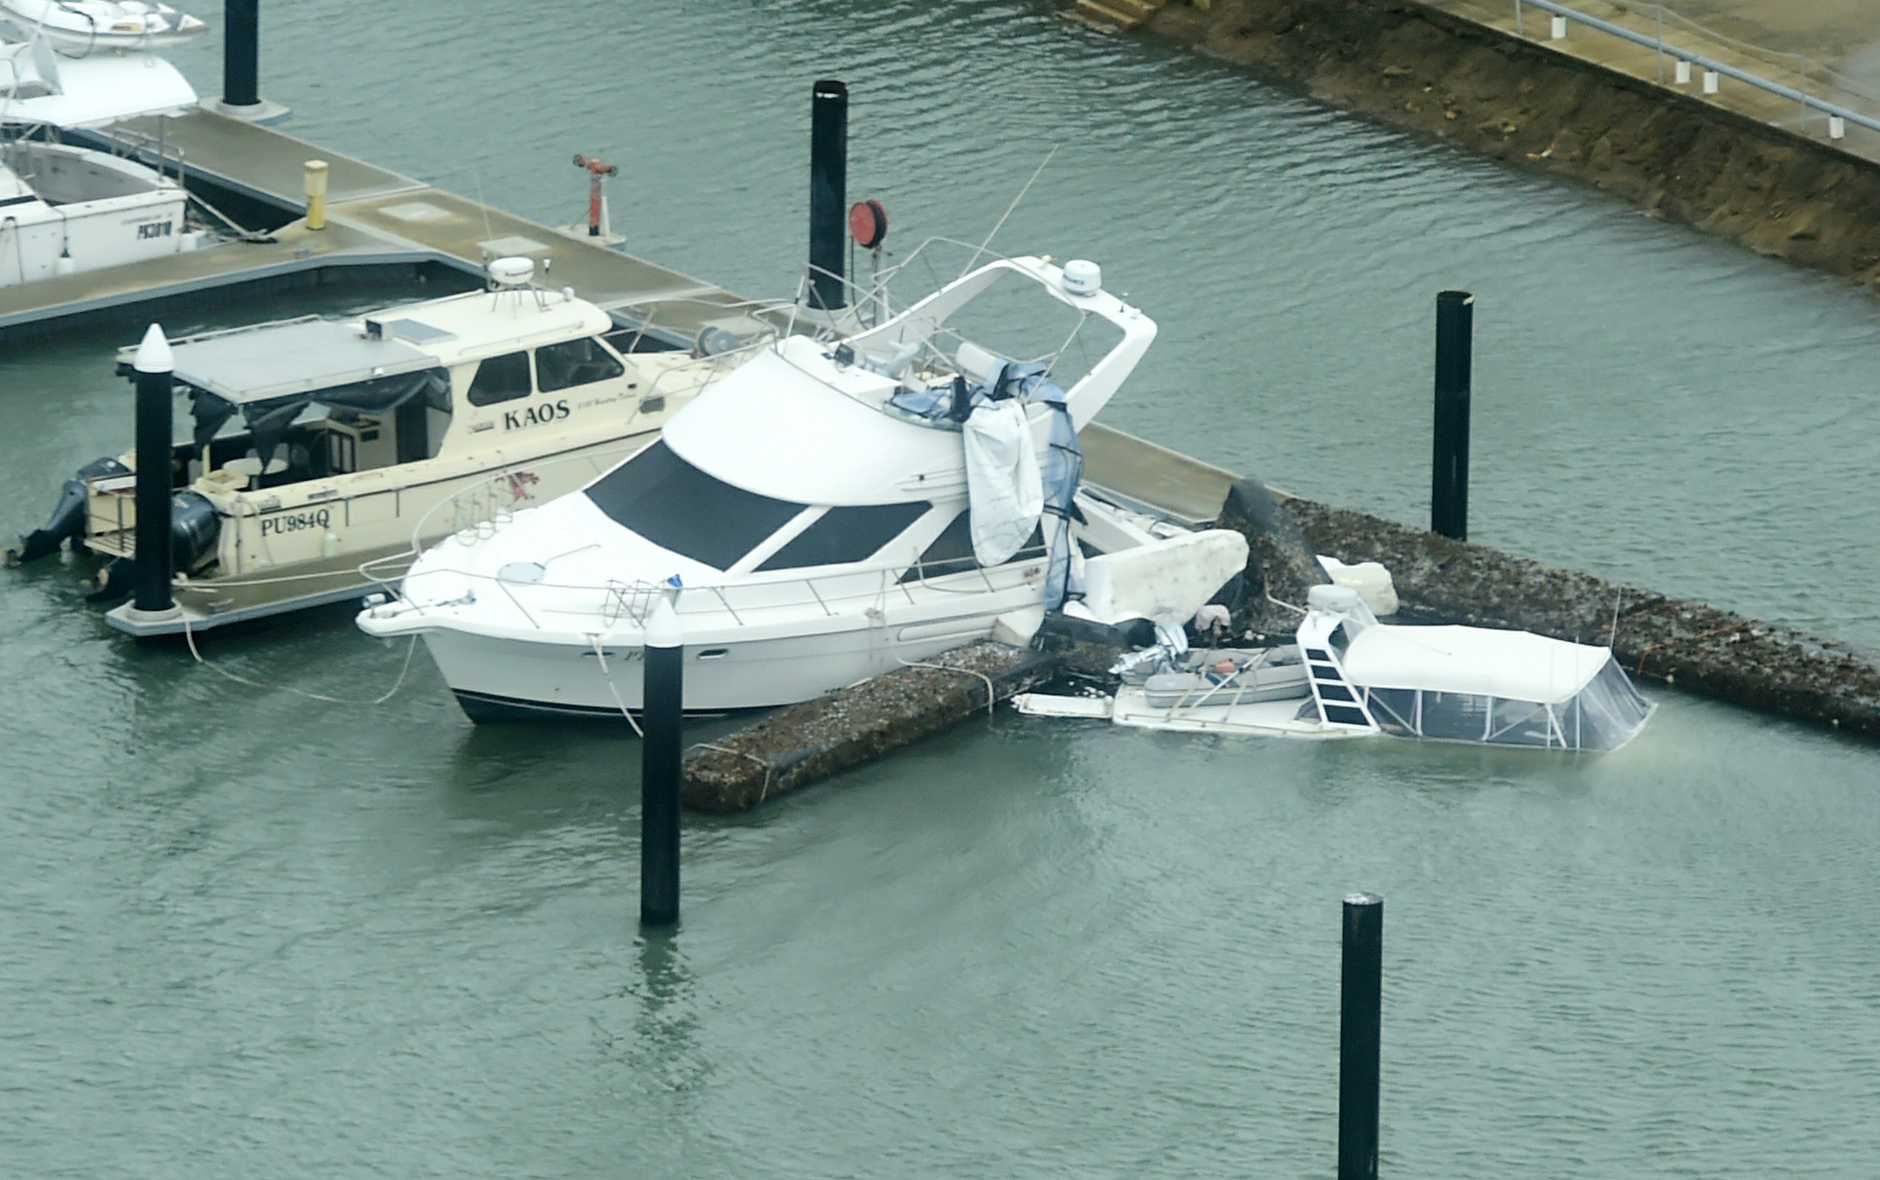 A boat sunk at the Bowen Marina caused by Tropical Cyclone Debbie.